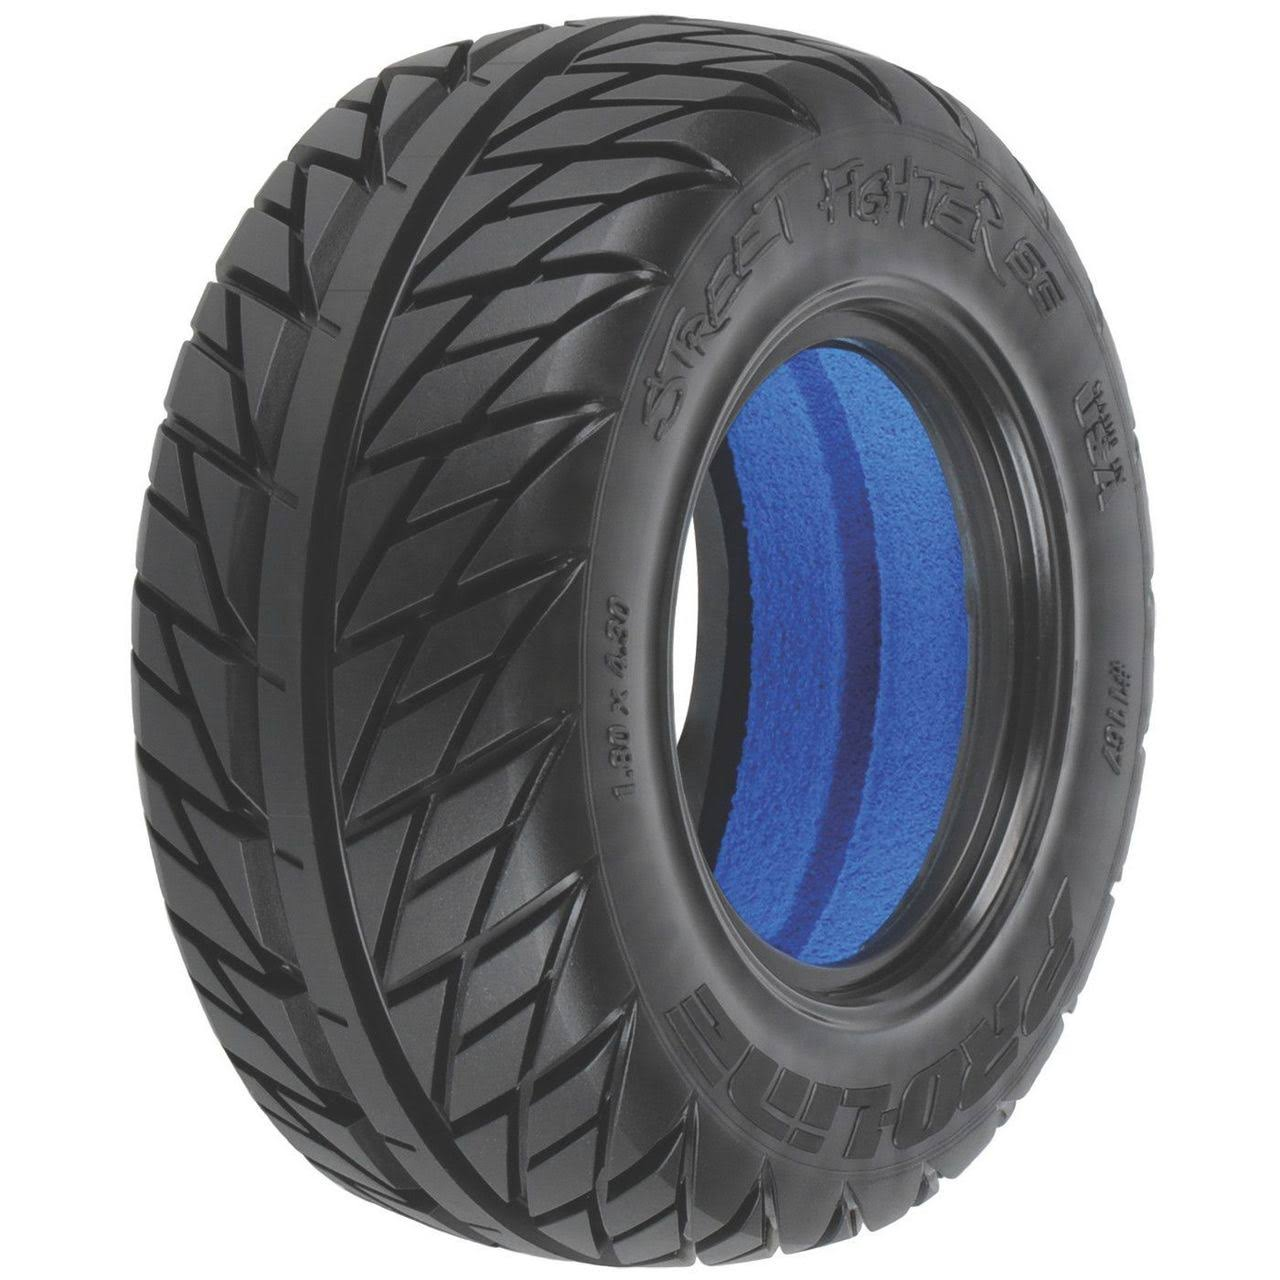 Pro-Line Racing Street Fighter Tyres - SC 5.6cm, 7.6cm, M2, Medium